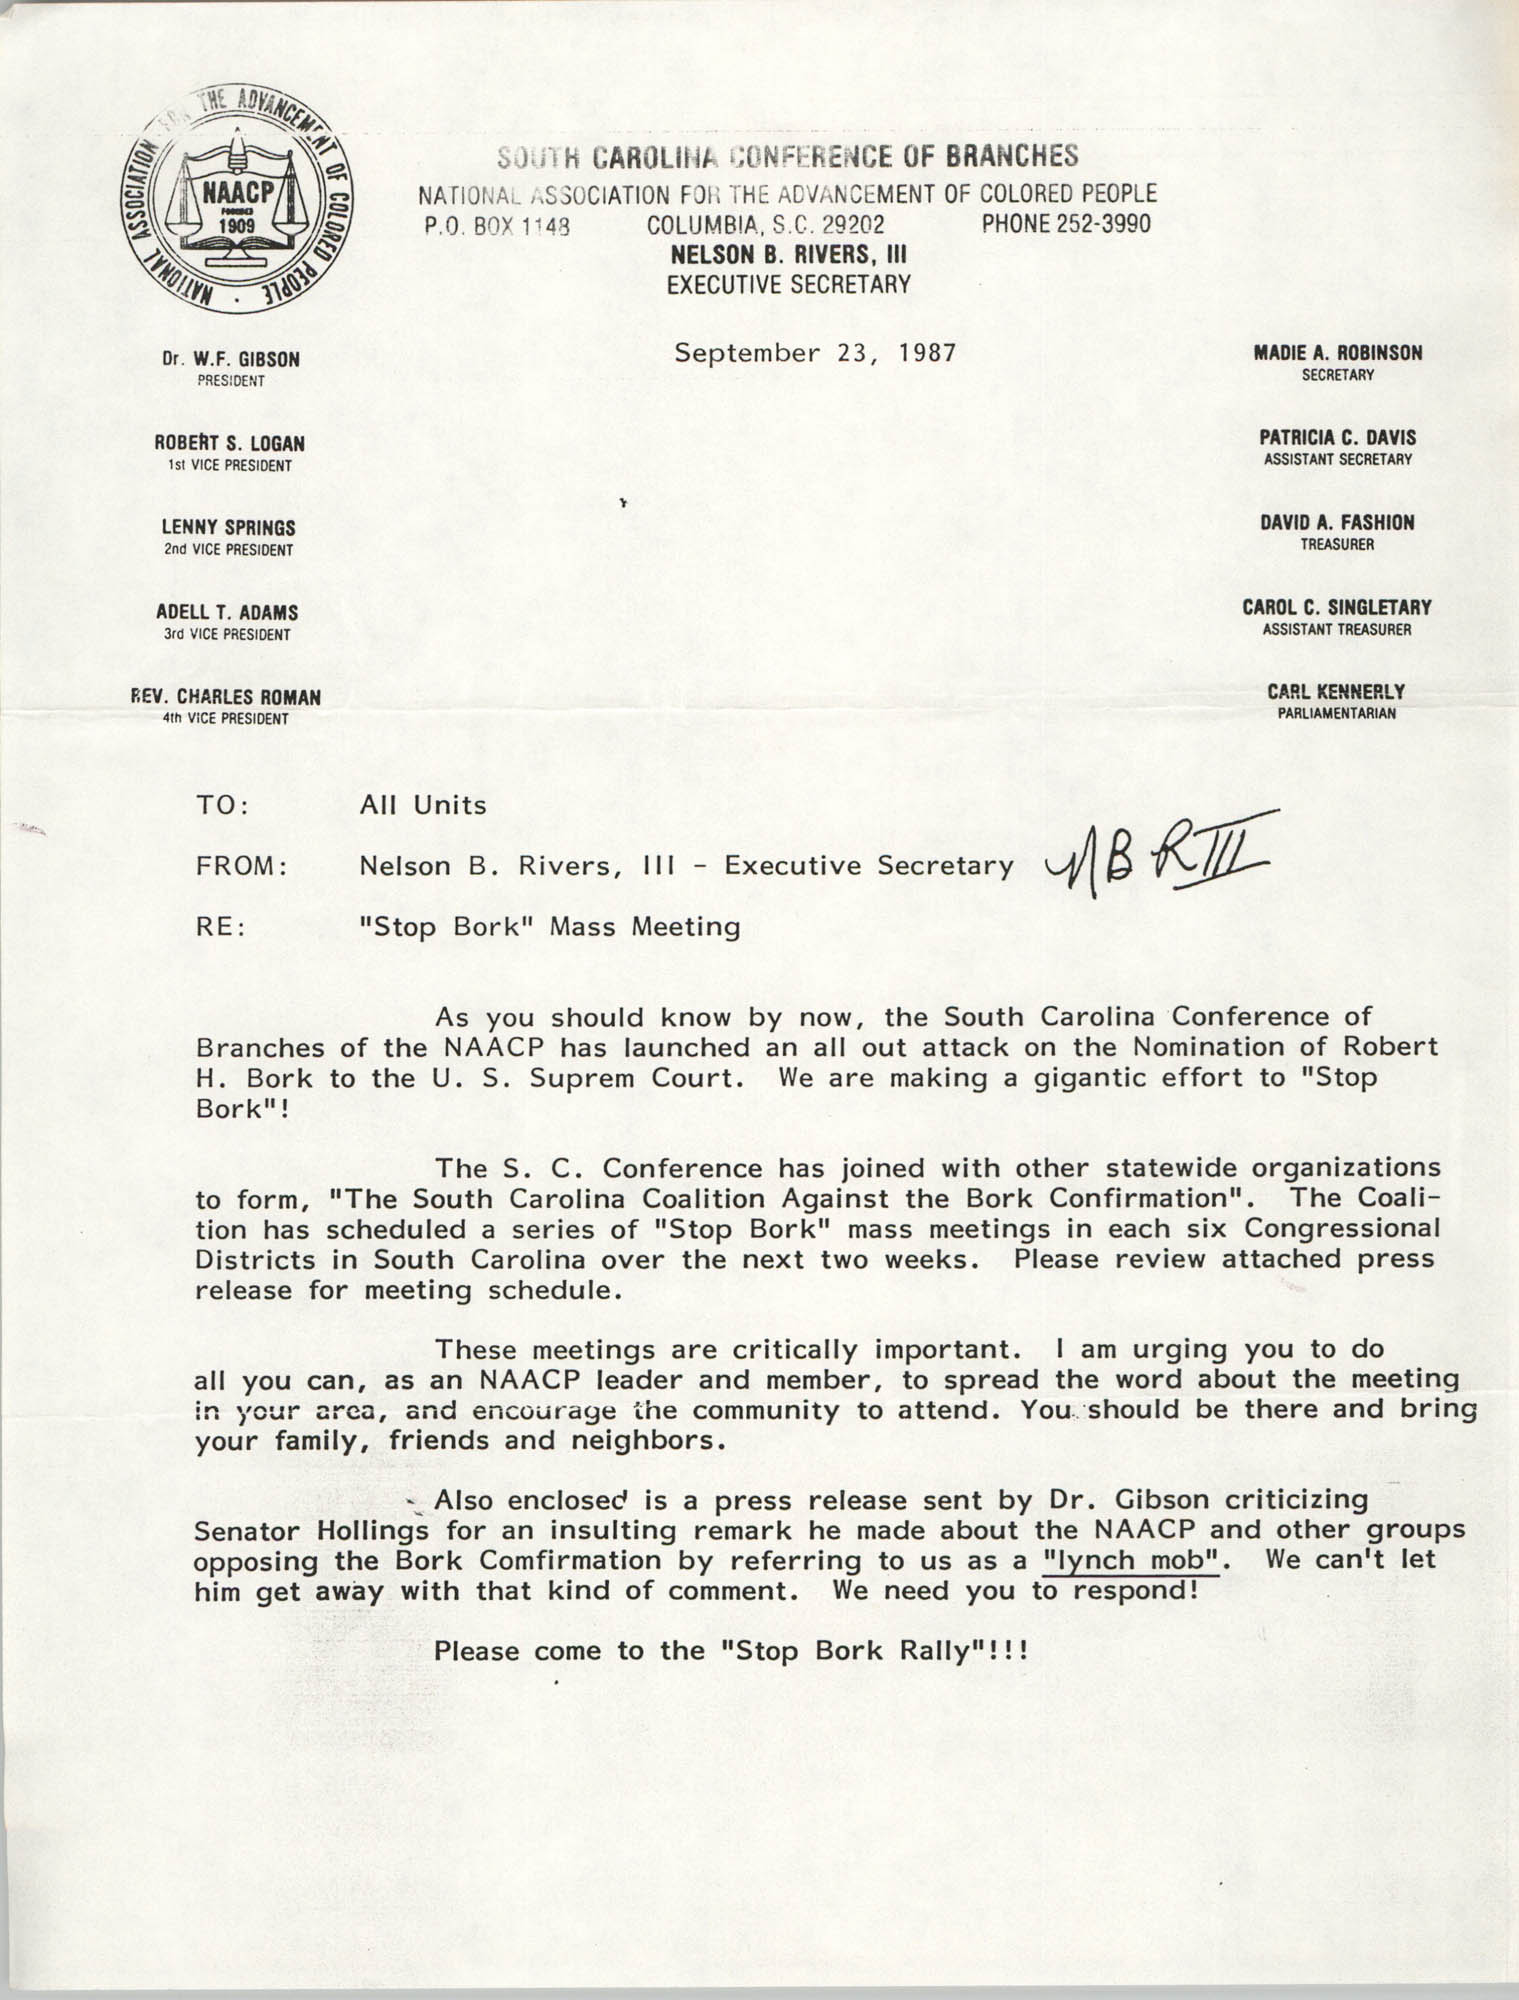 South Carolina Conference of Branches of the NAACP Memorandum, September 23, 1987